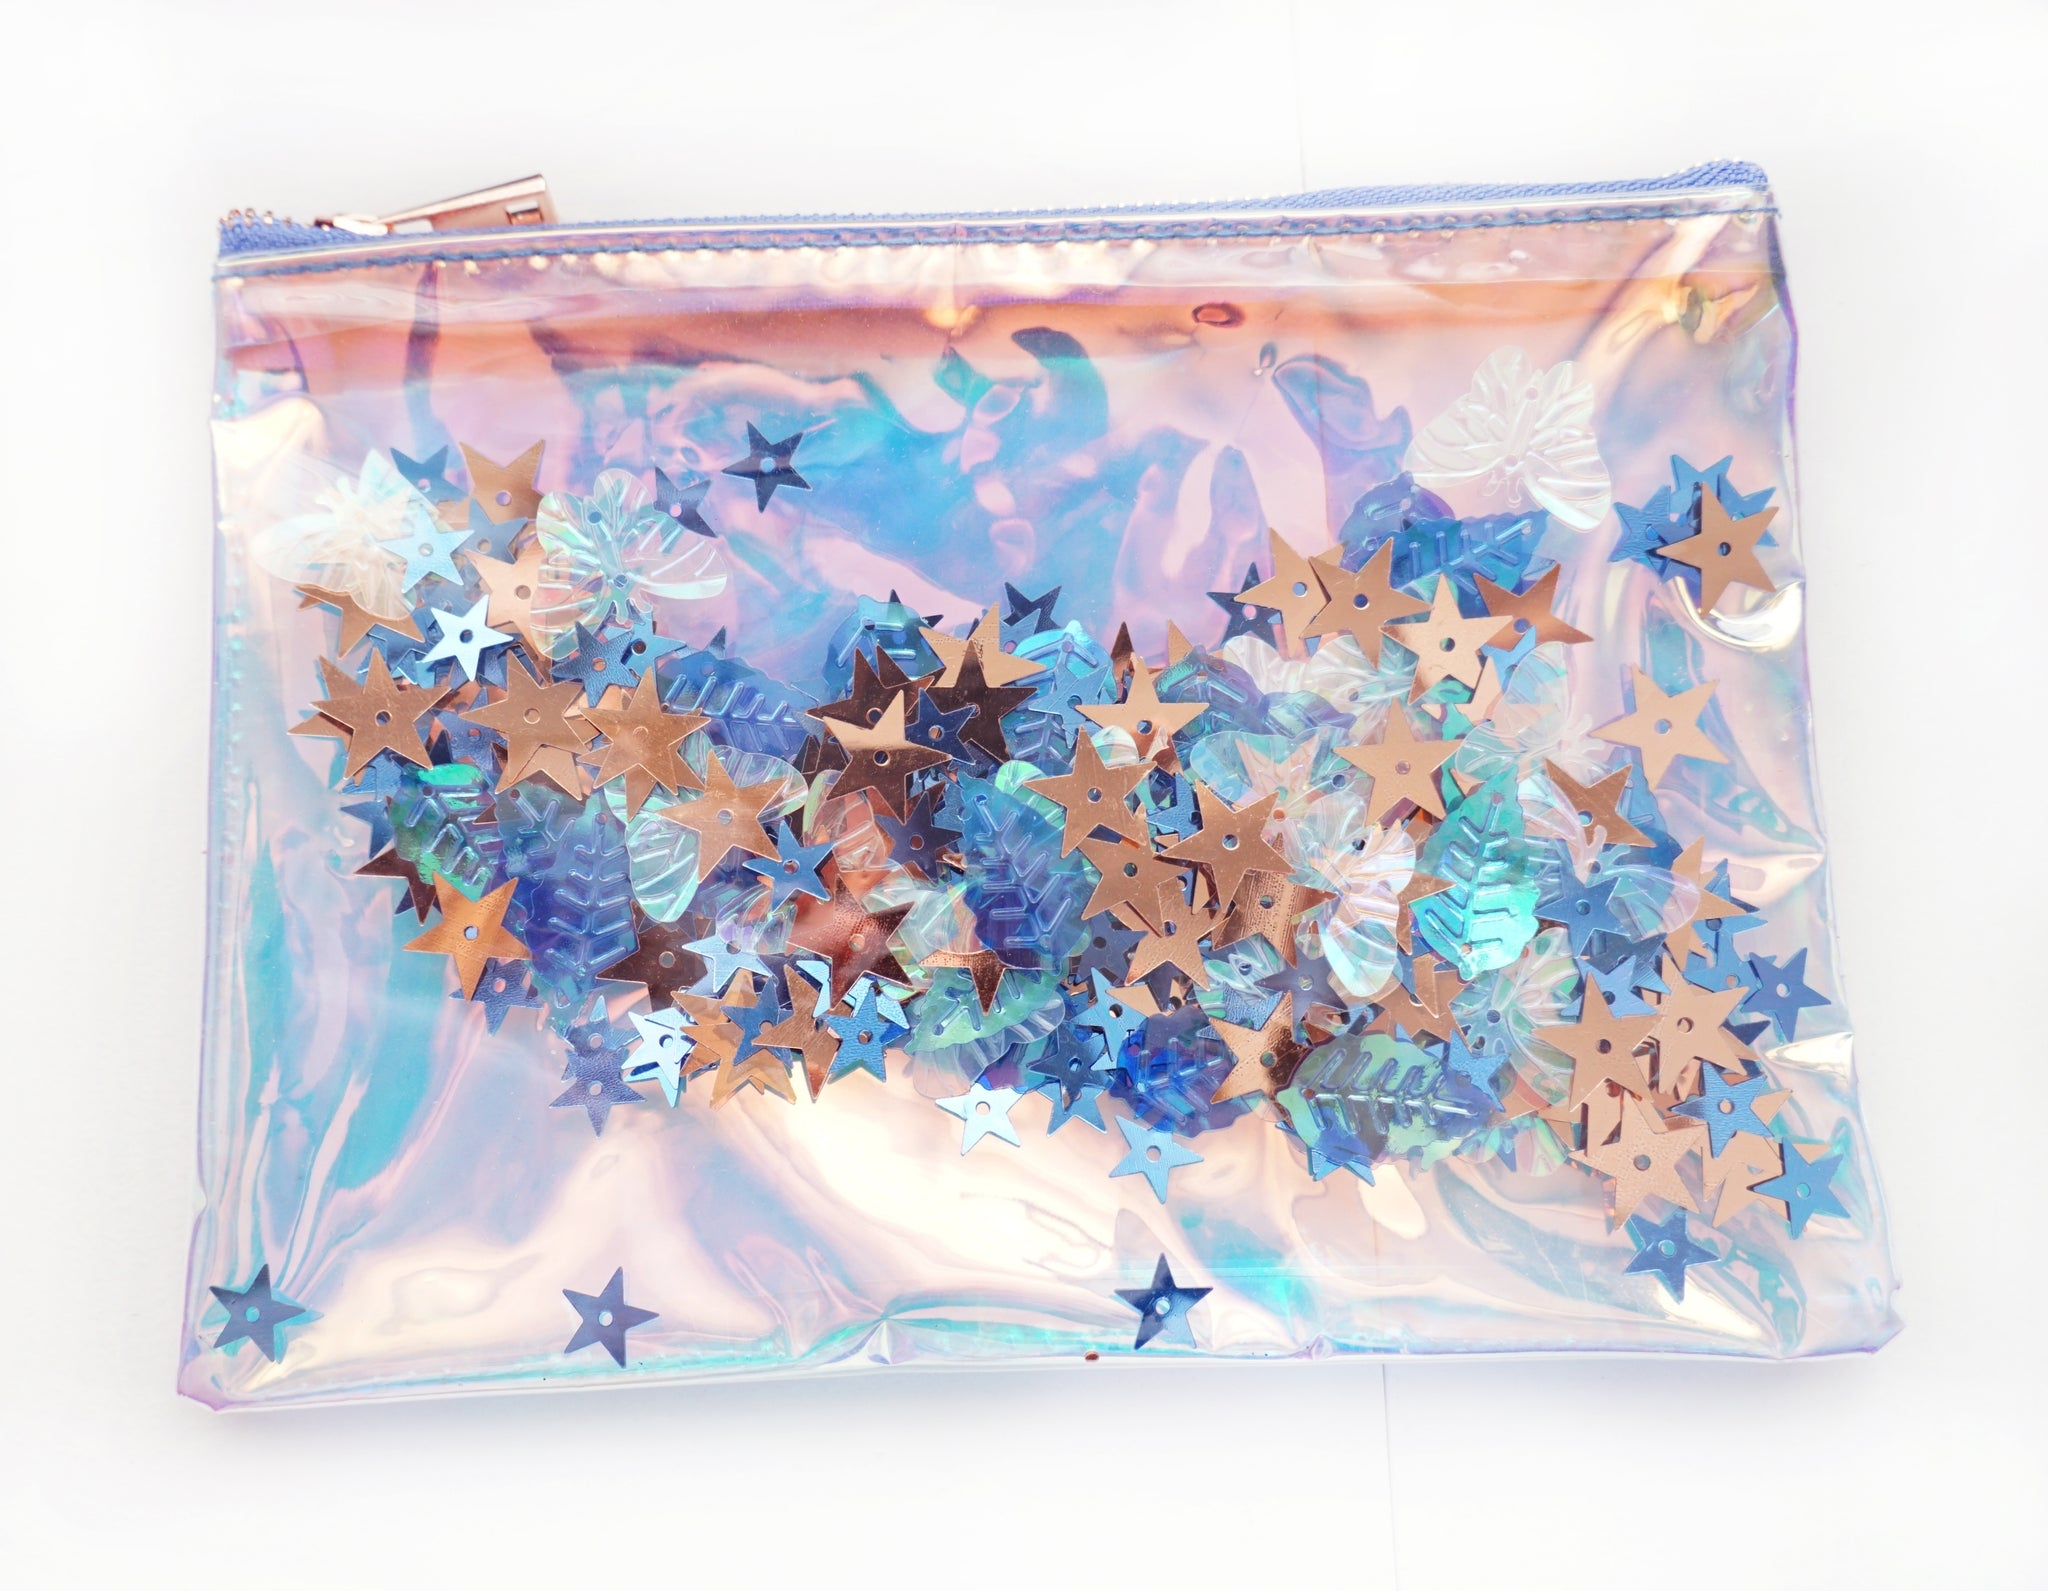 POUCH ONLY - ENCHANTED FOREST shaker pouch + rose gold hardware (Mystery Monday)